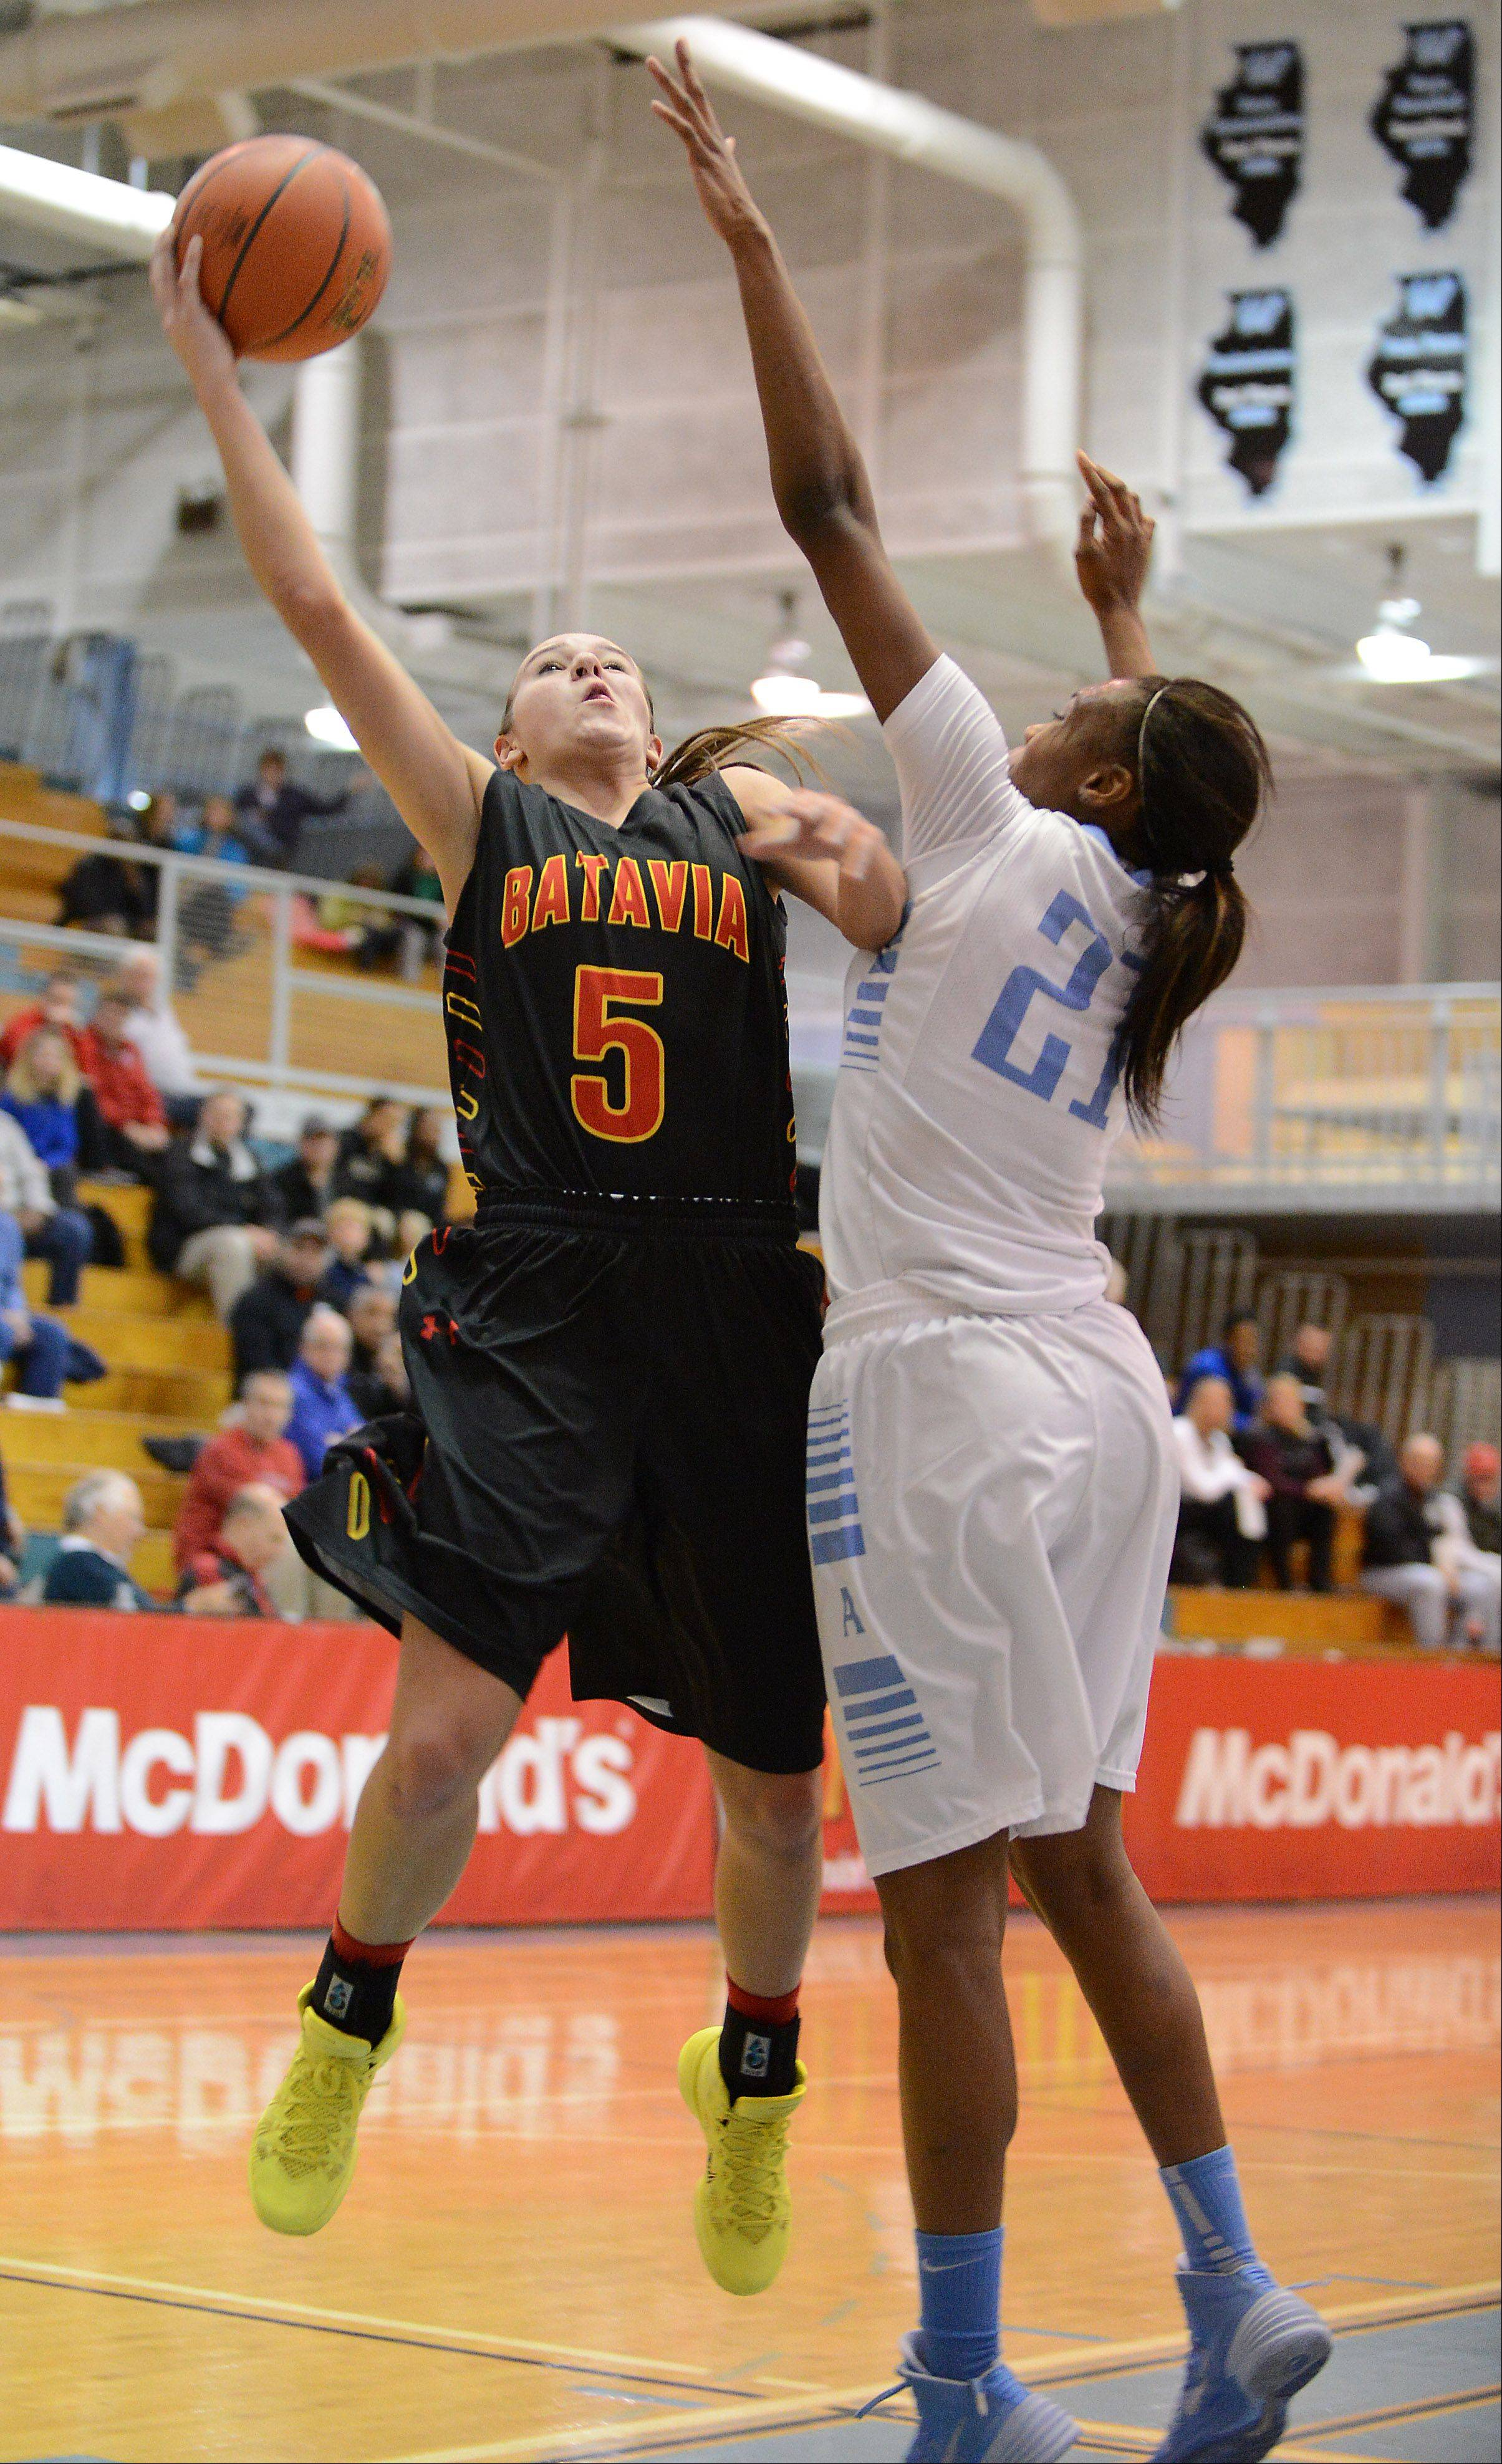 Batavia's Liza Fruendt puts up a shot over Joliet Catholic's Jasmine Lumpkin during Monday's game at the 24th annual McDonald's Shootout at Willowbrook High School in Villa Park.